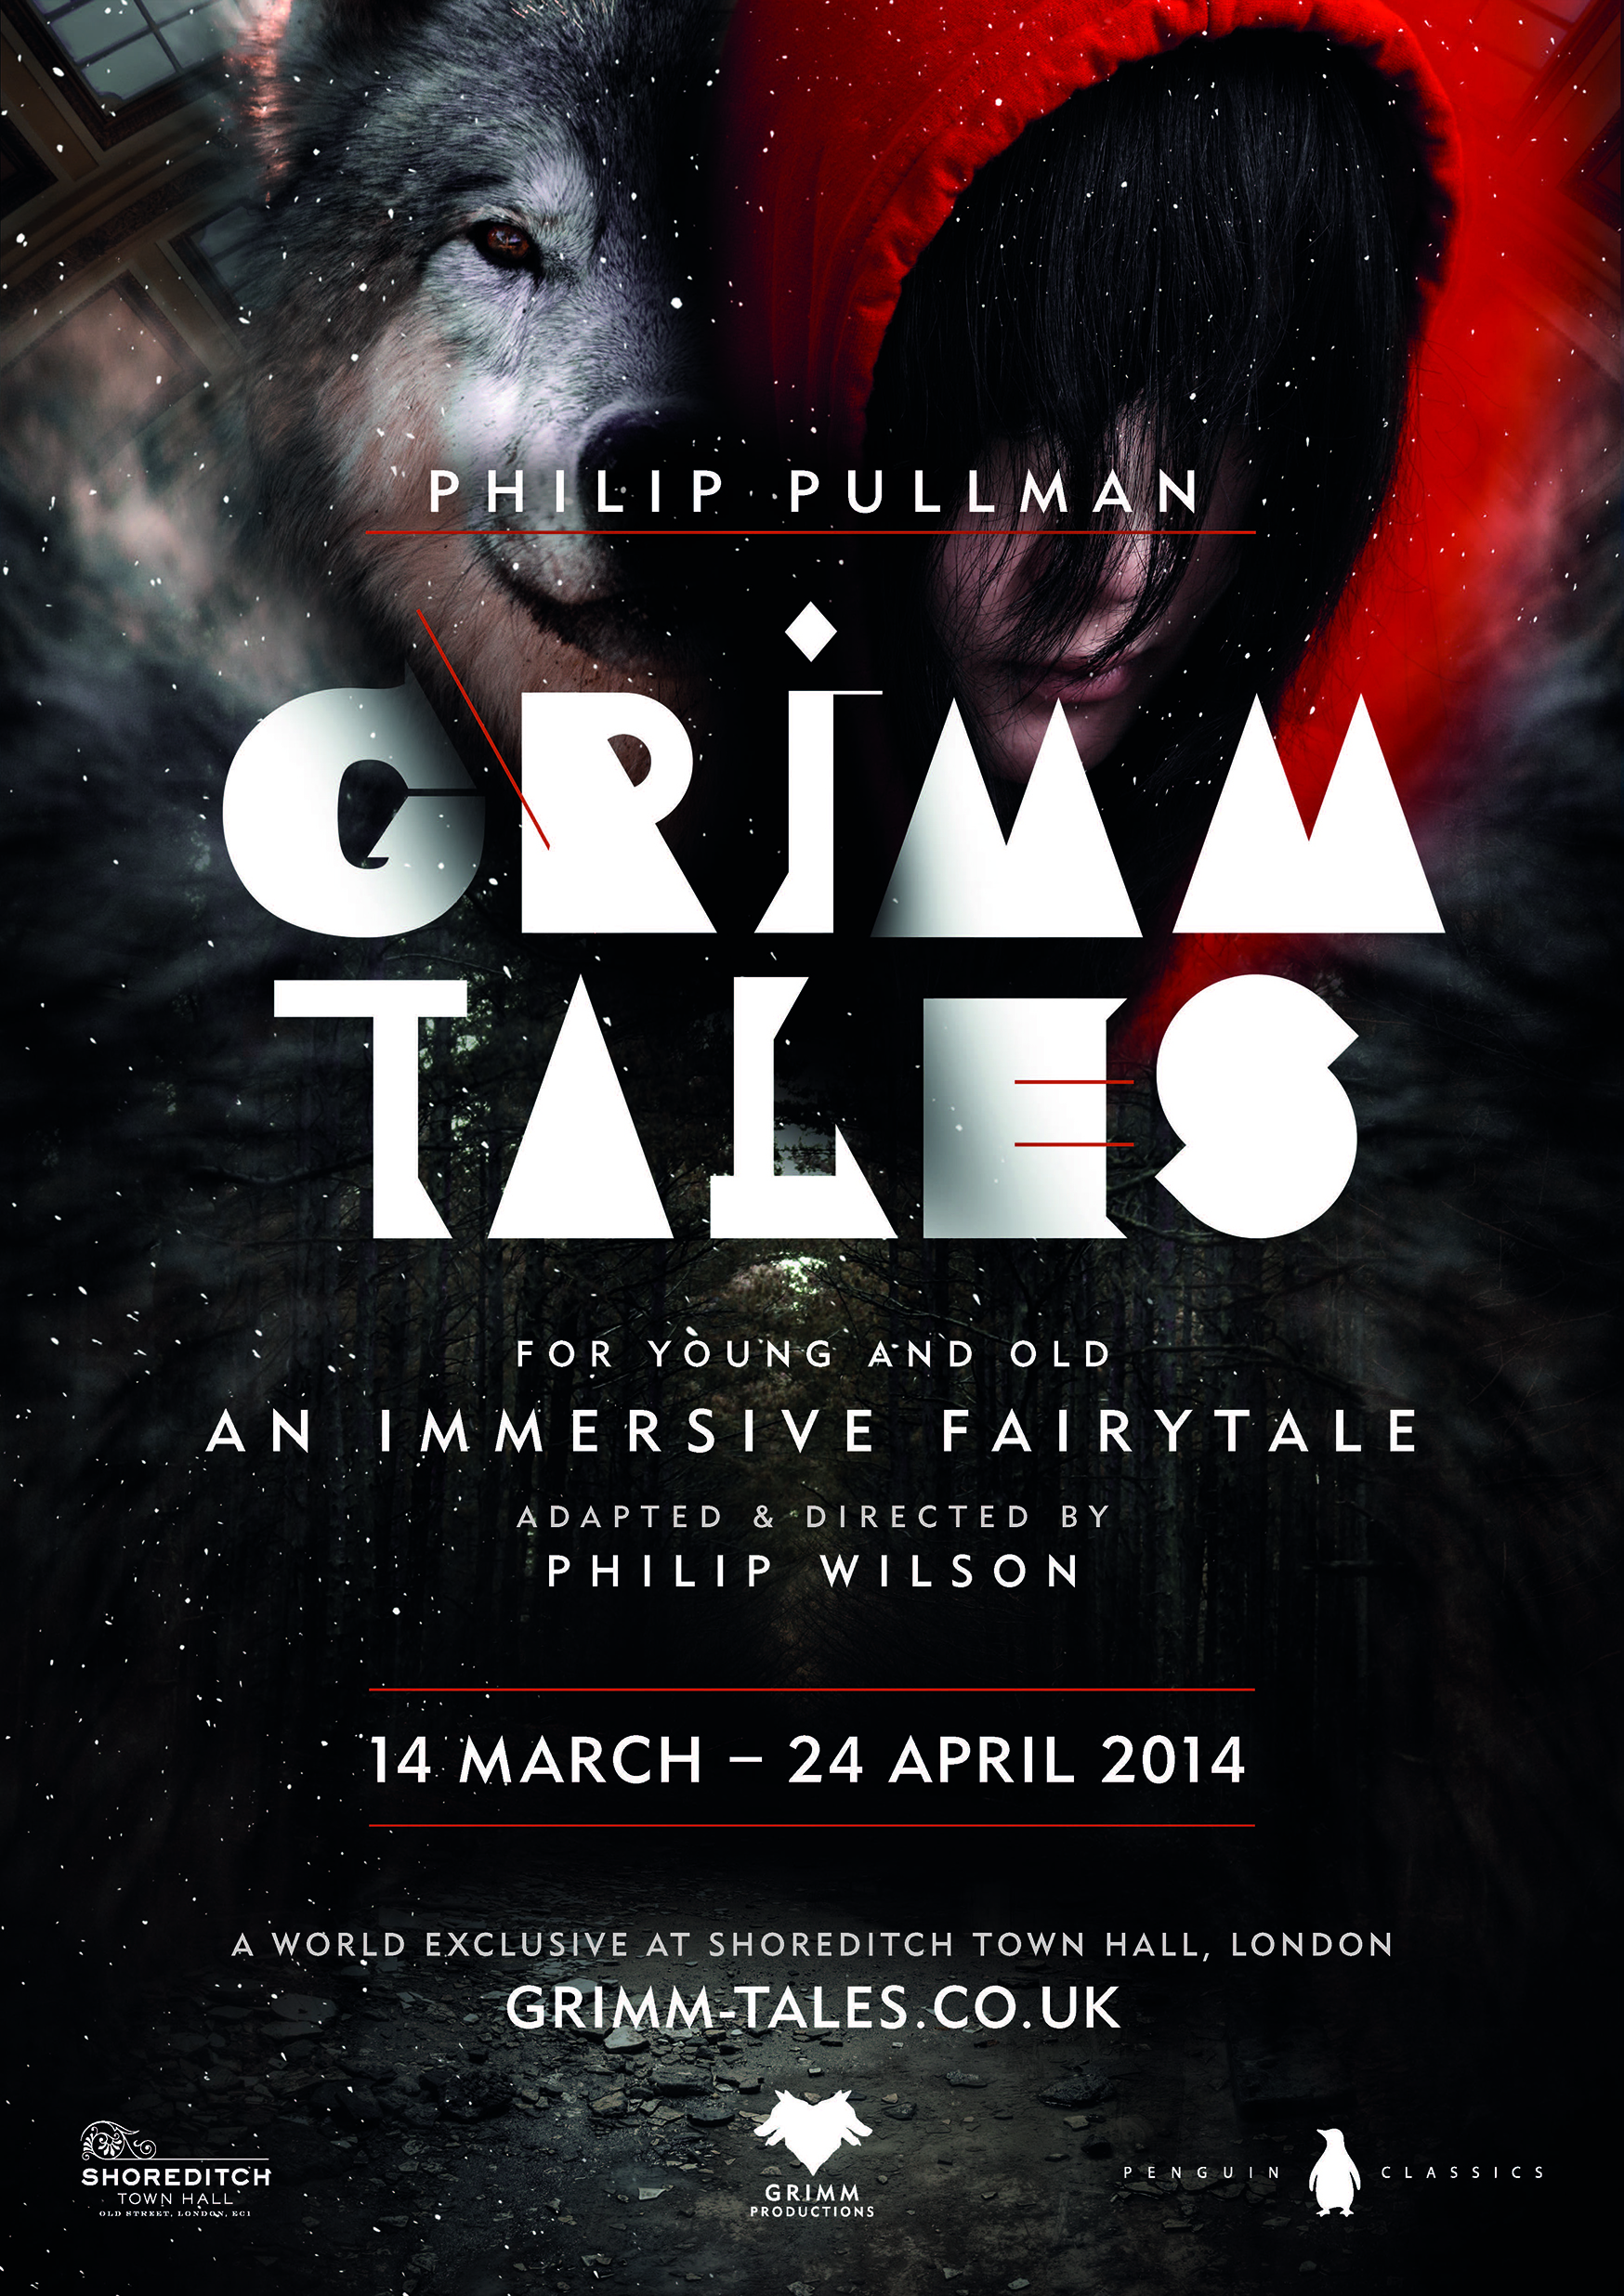 Shoreditch Town Hall: Grimm Tales Will Have It's World Premier At Shoreditch